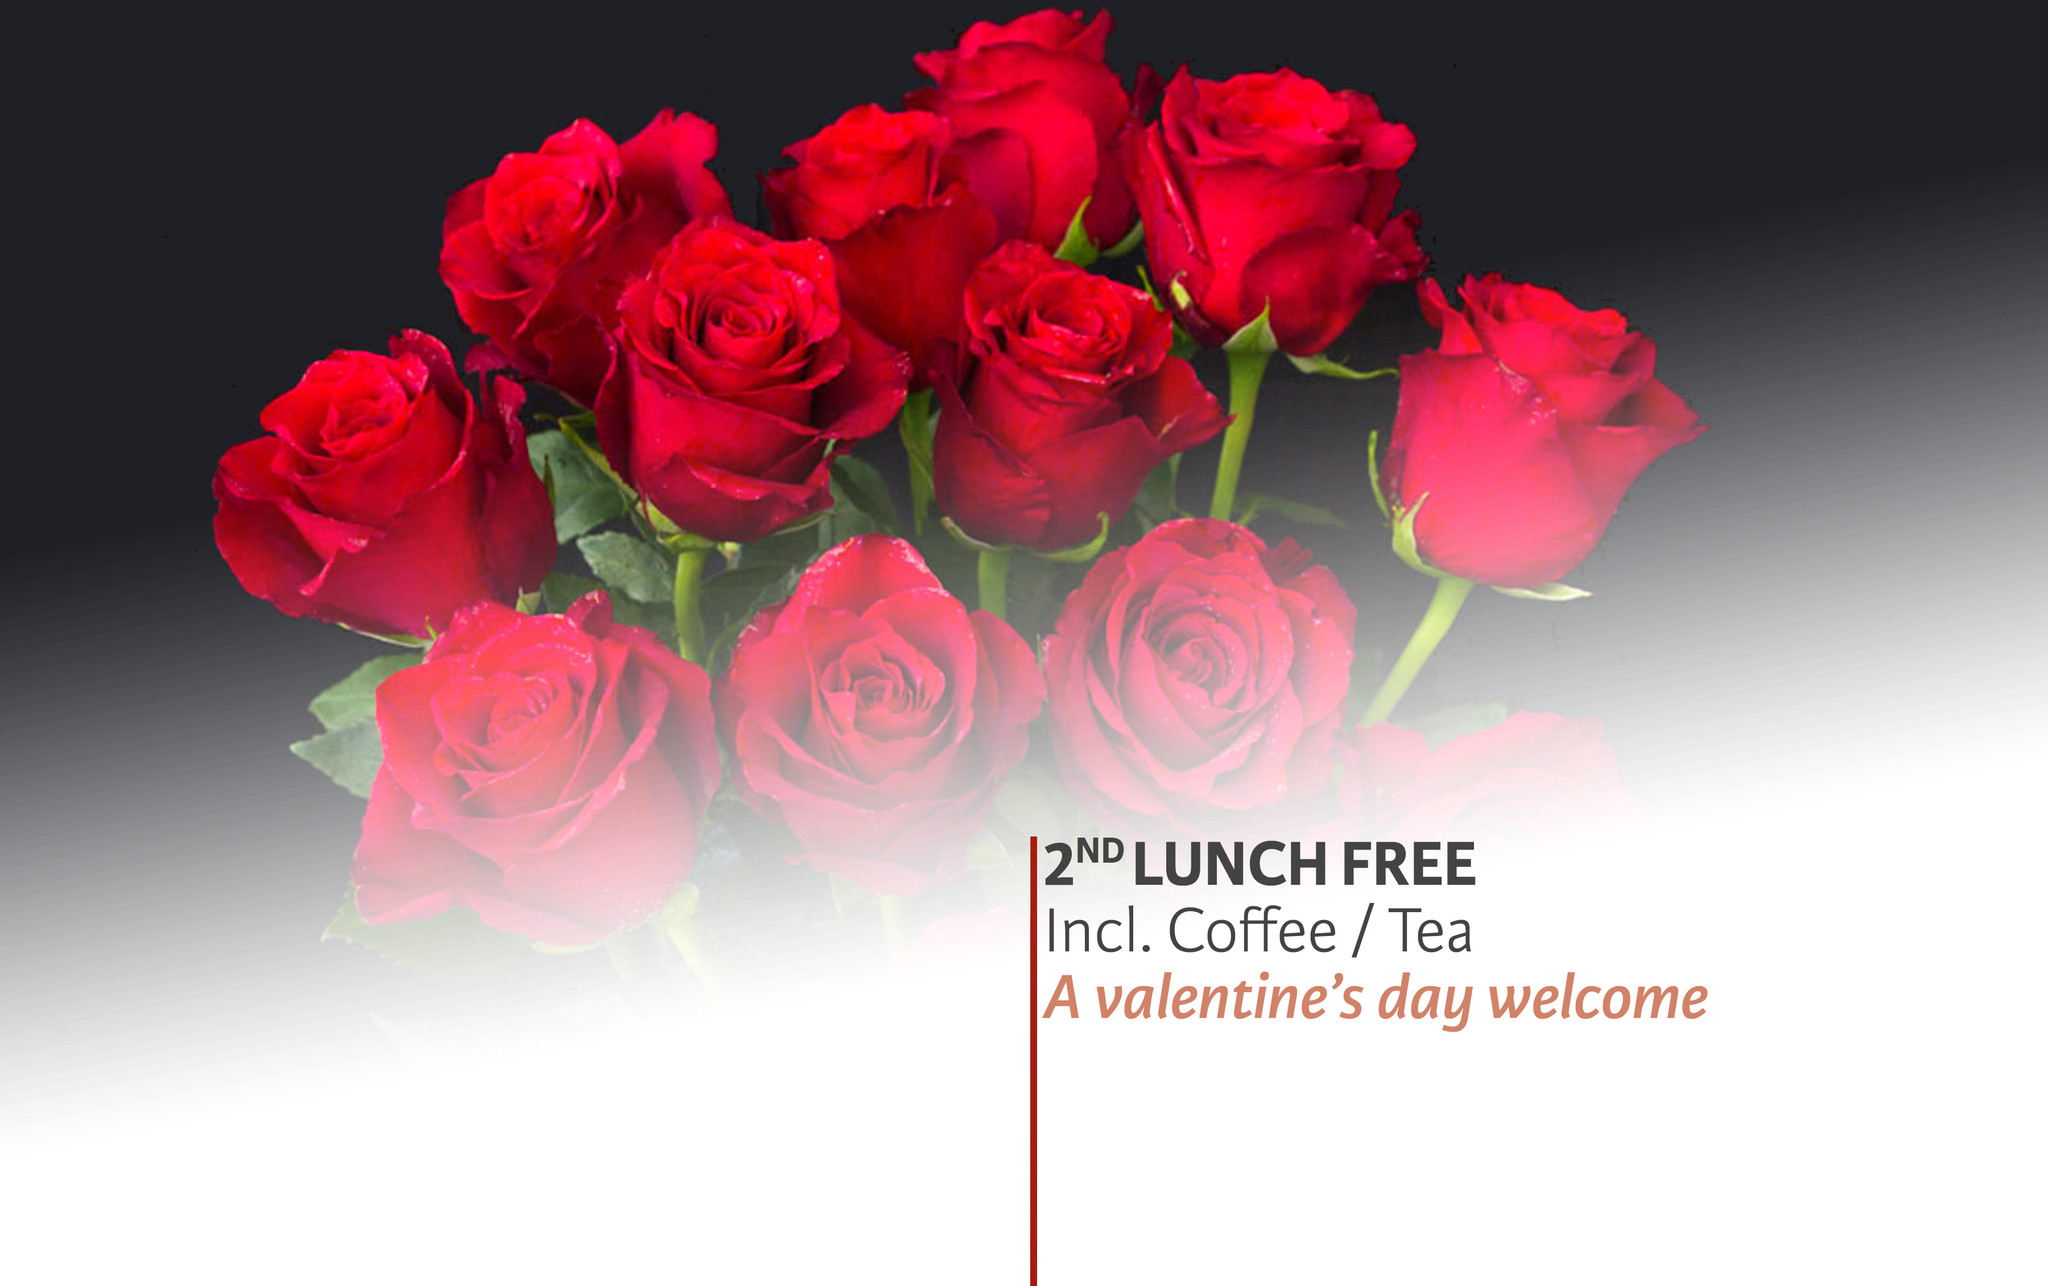 2nd Lunch For Free @ TFOA! | Valentine's Day